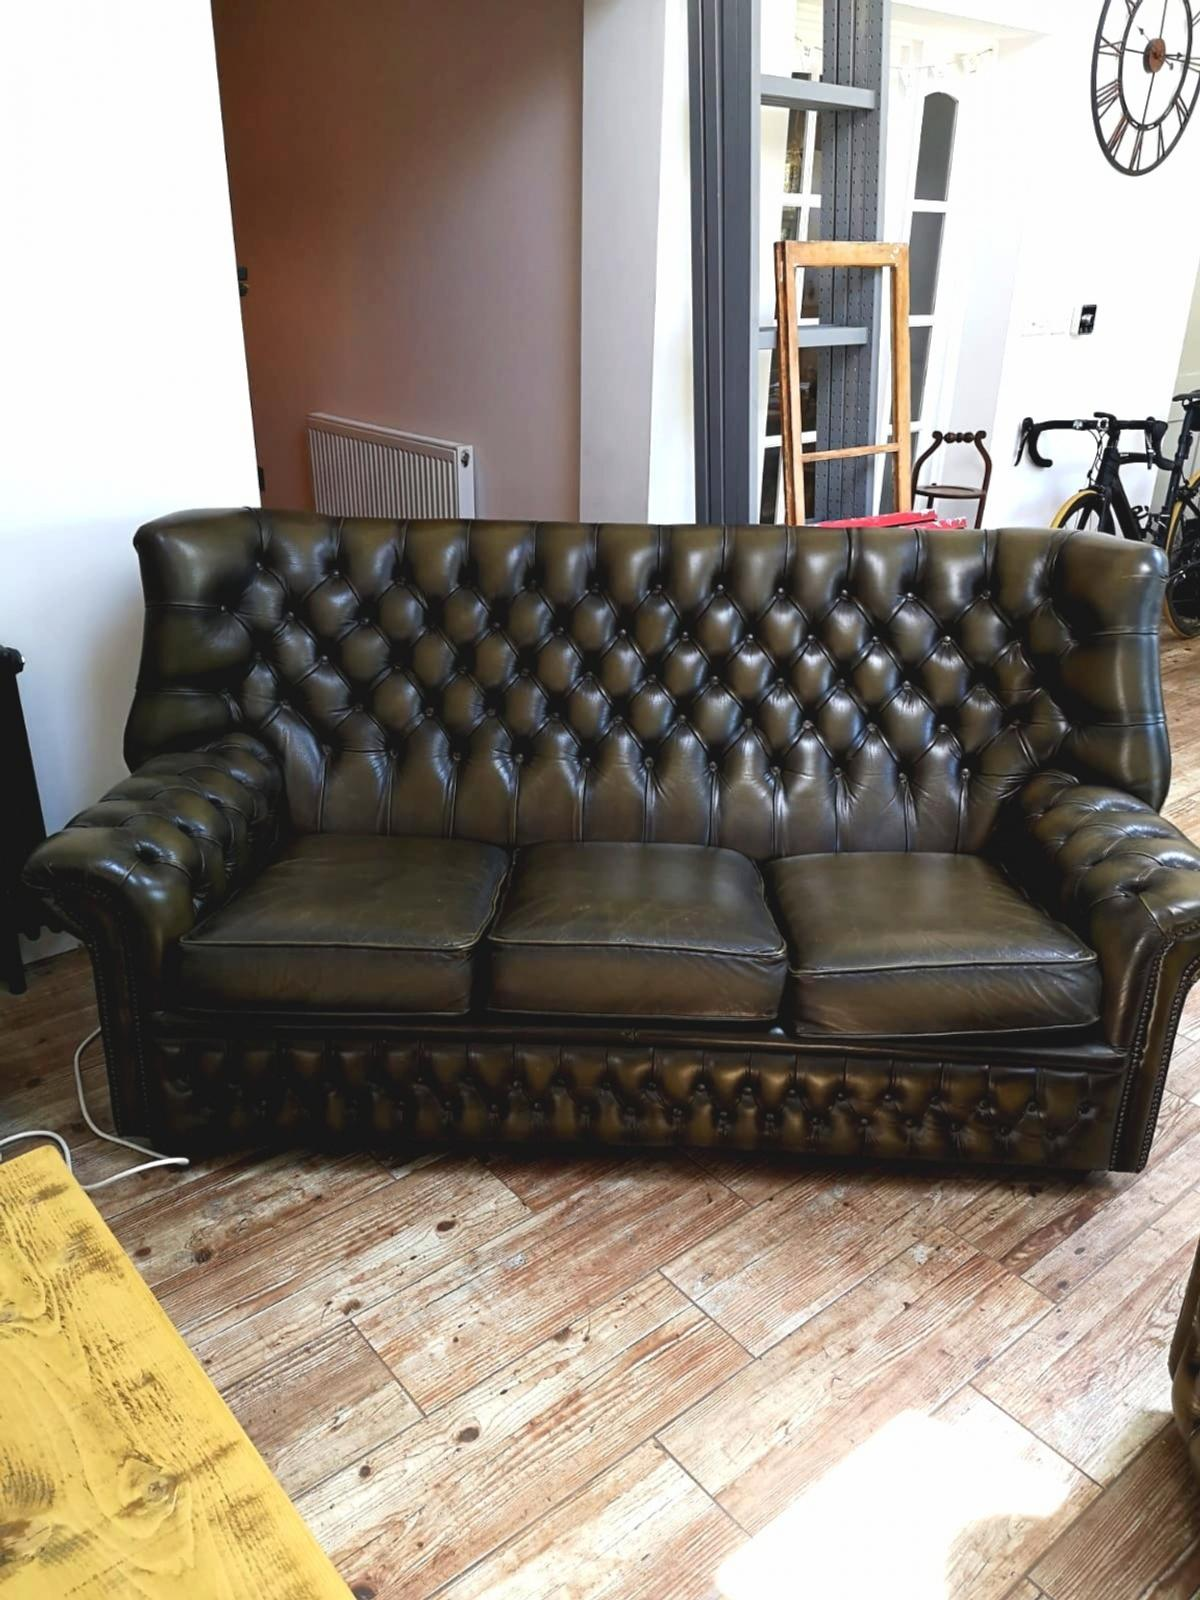 - Chesterfield Bottle Green Sofa And Chair In NN14 Wellingborough